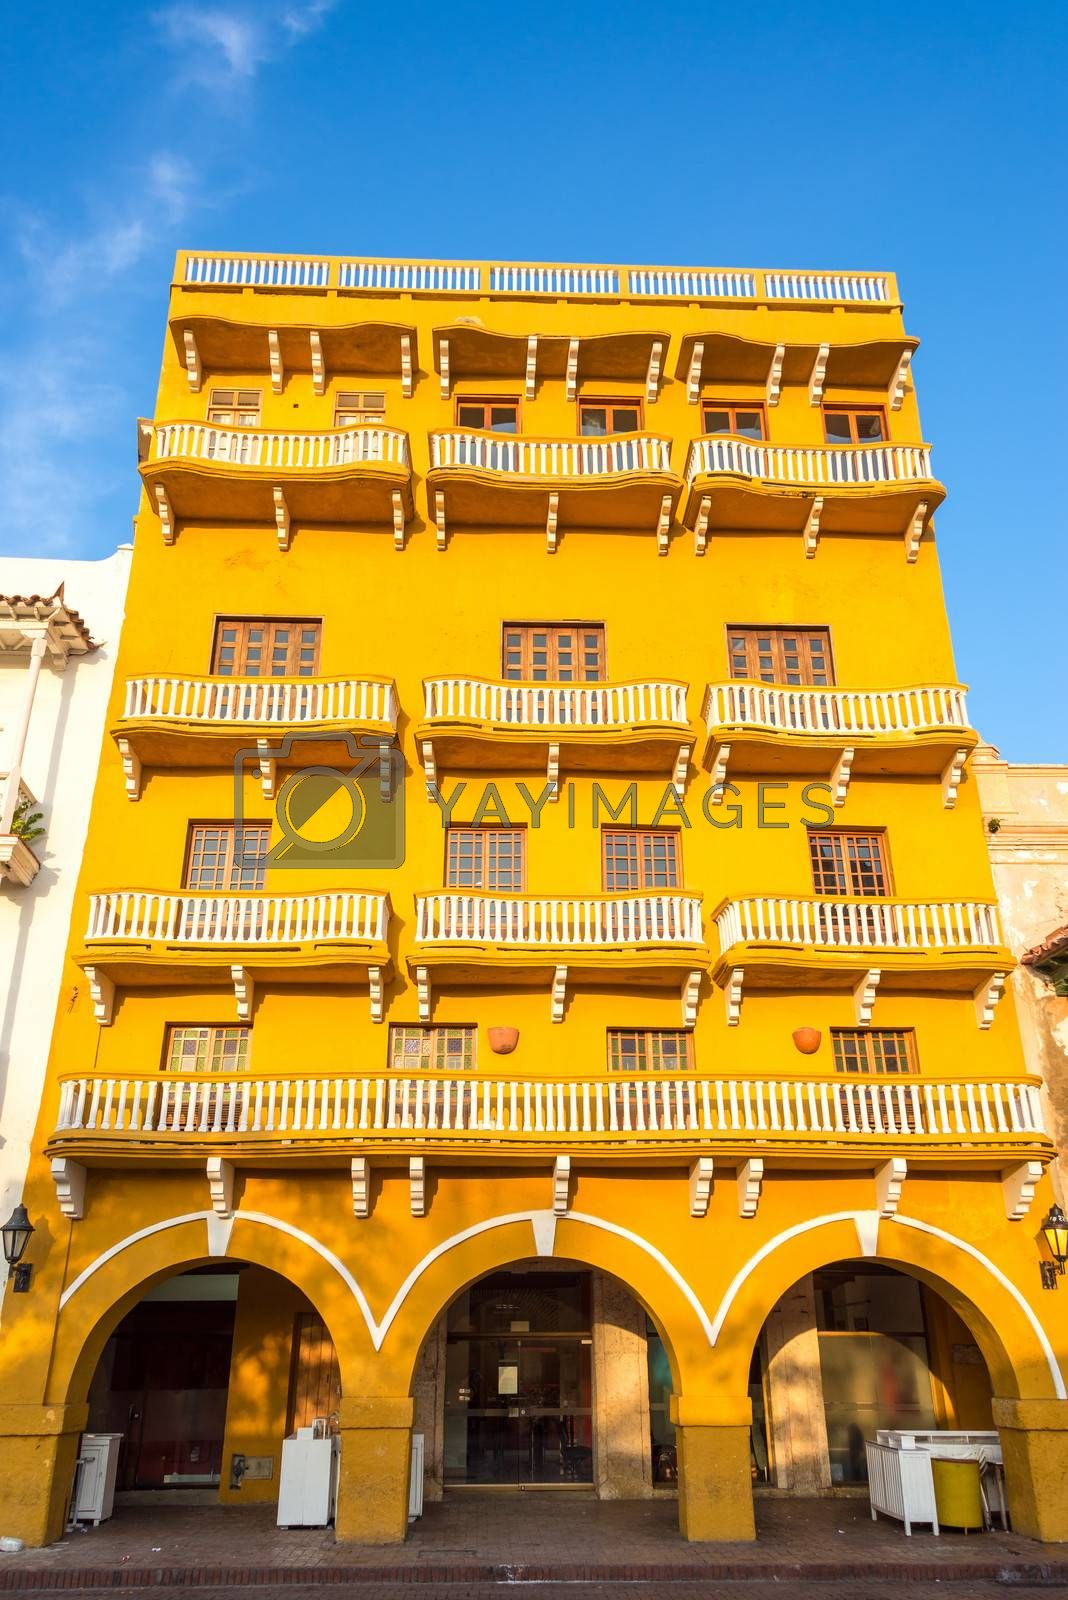 Historic architecture of a yellow colonial building in the historic center of Cartagena, Colombia